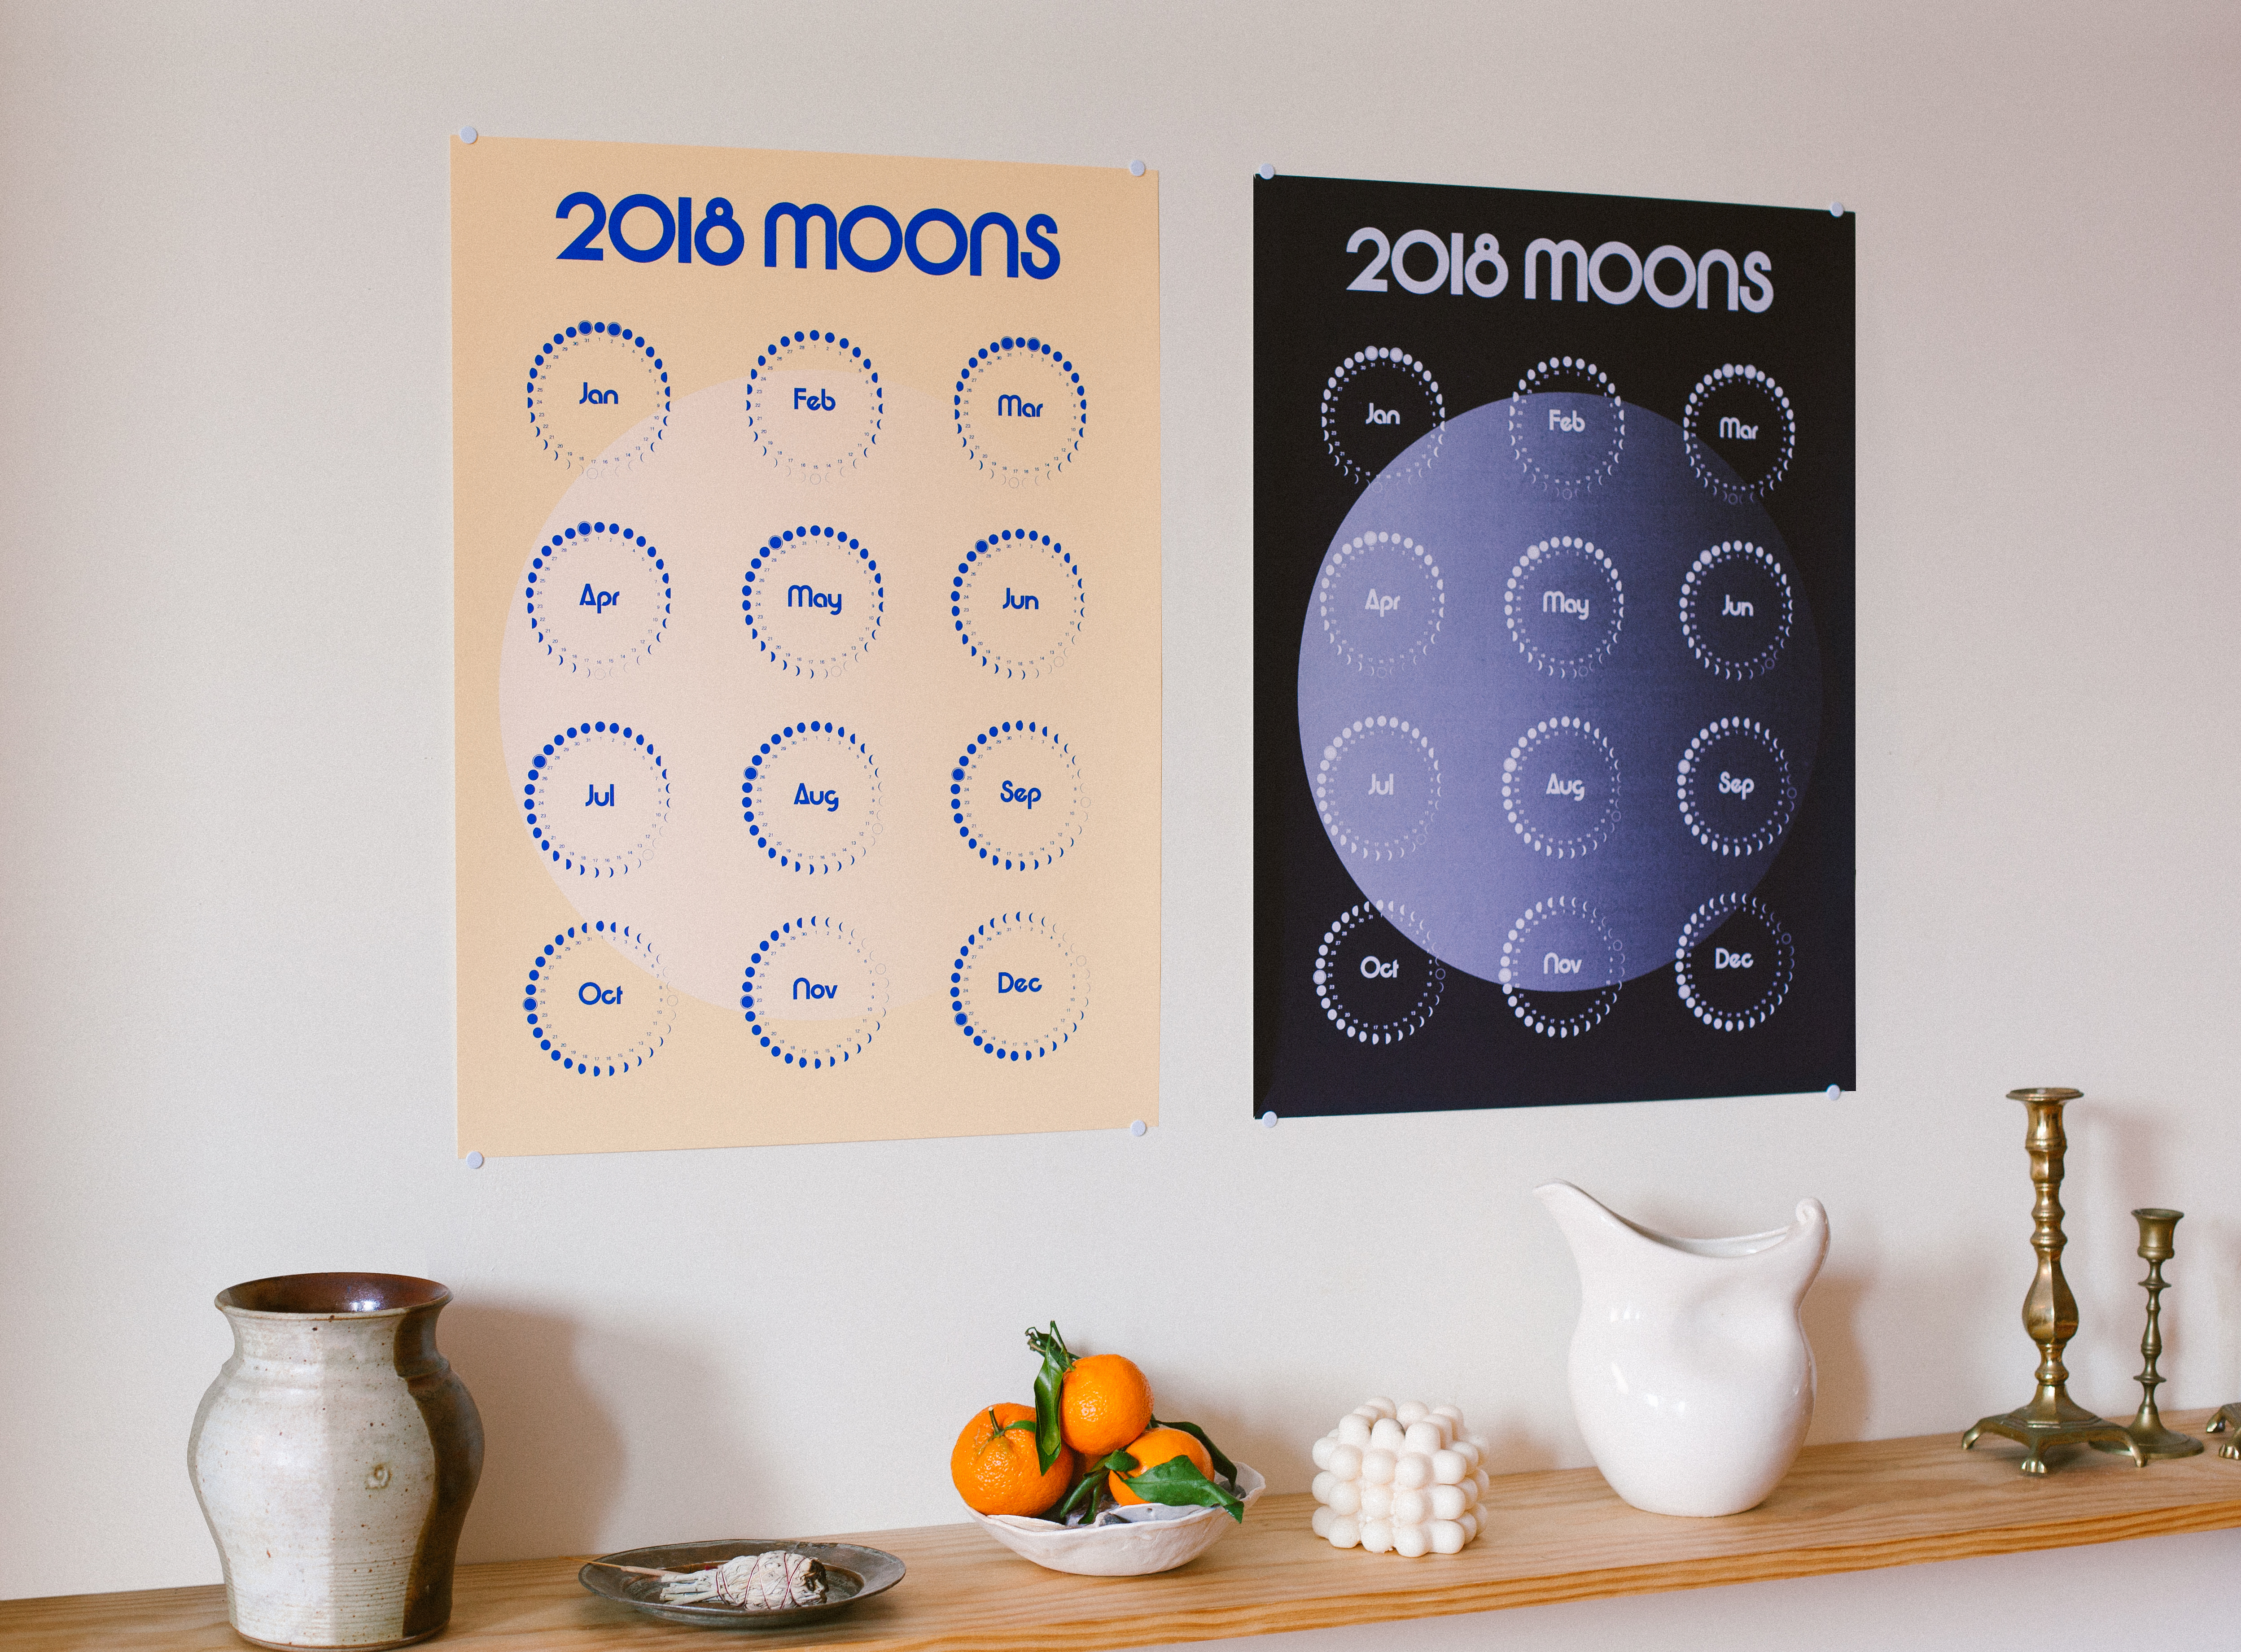 Moon Phase calendar giveaway from m00ns.com - Golubka Kitchen